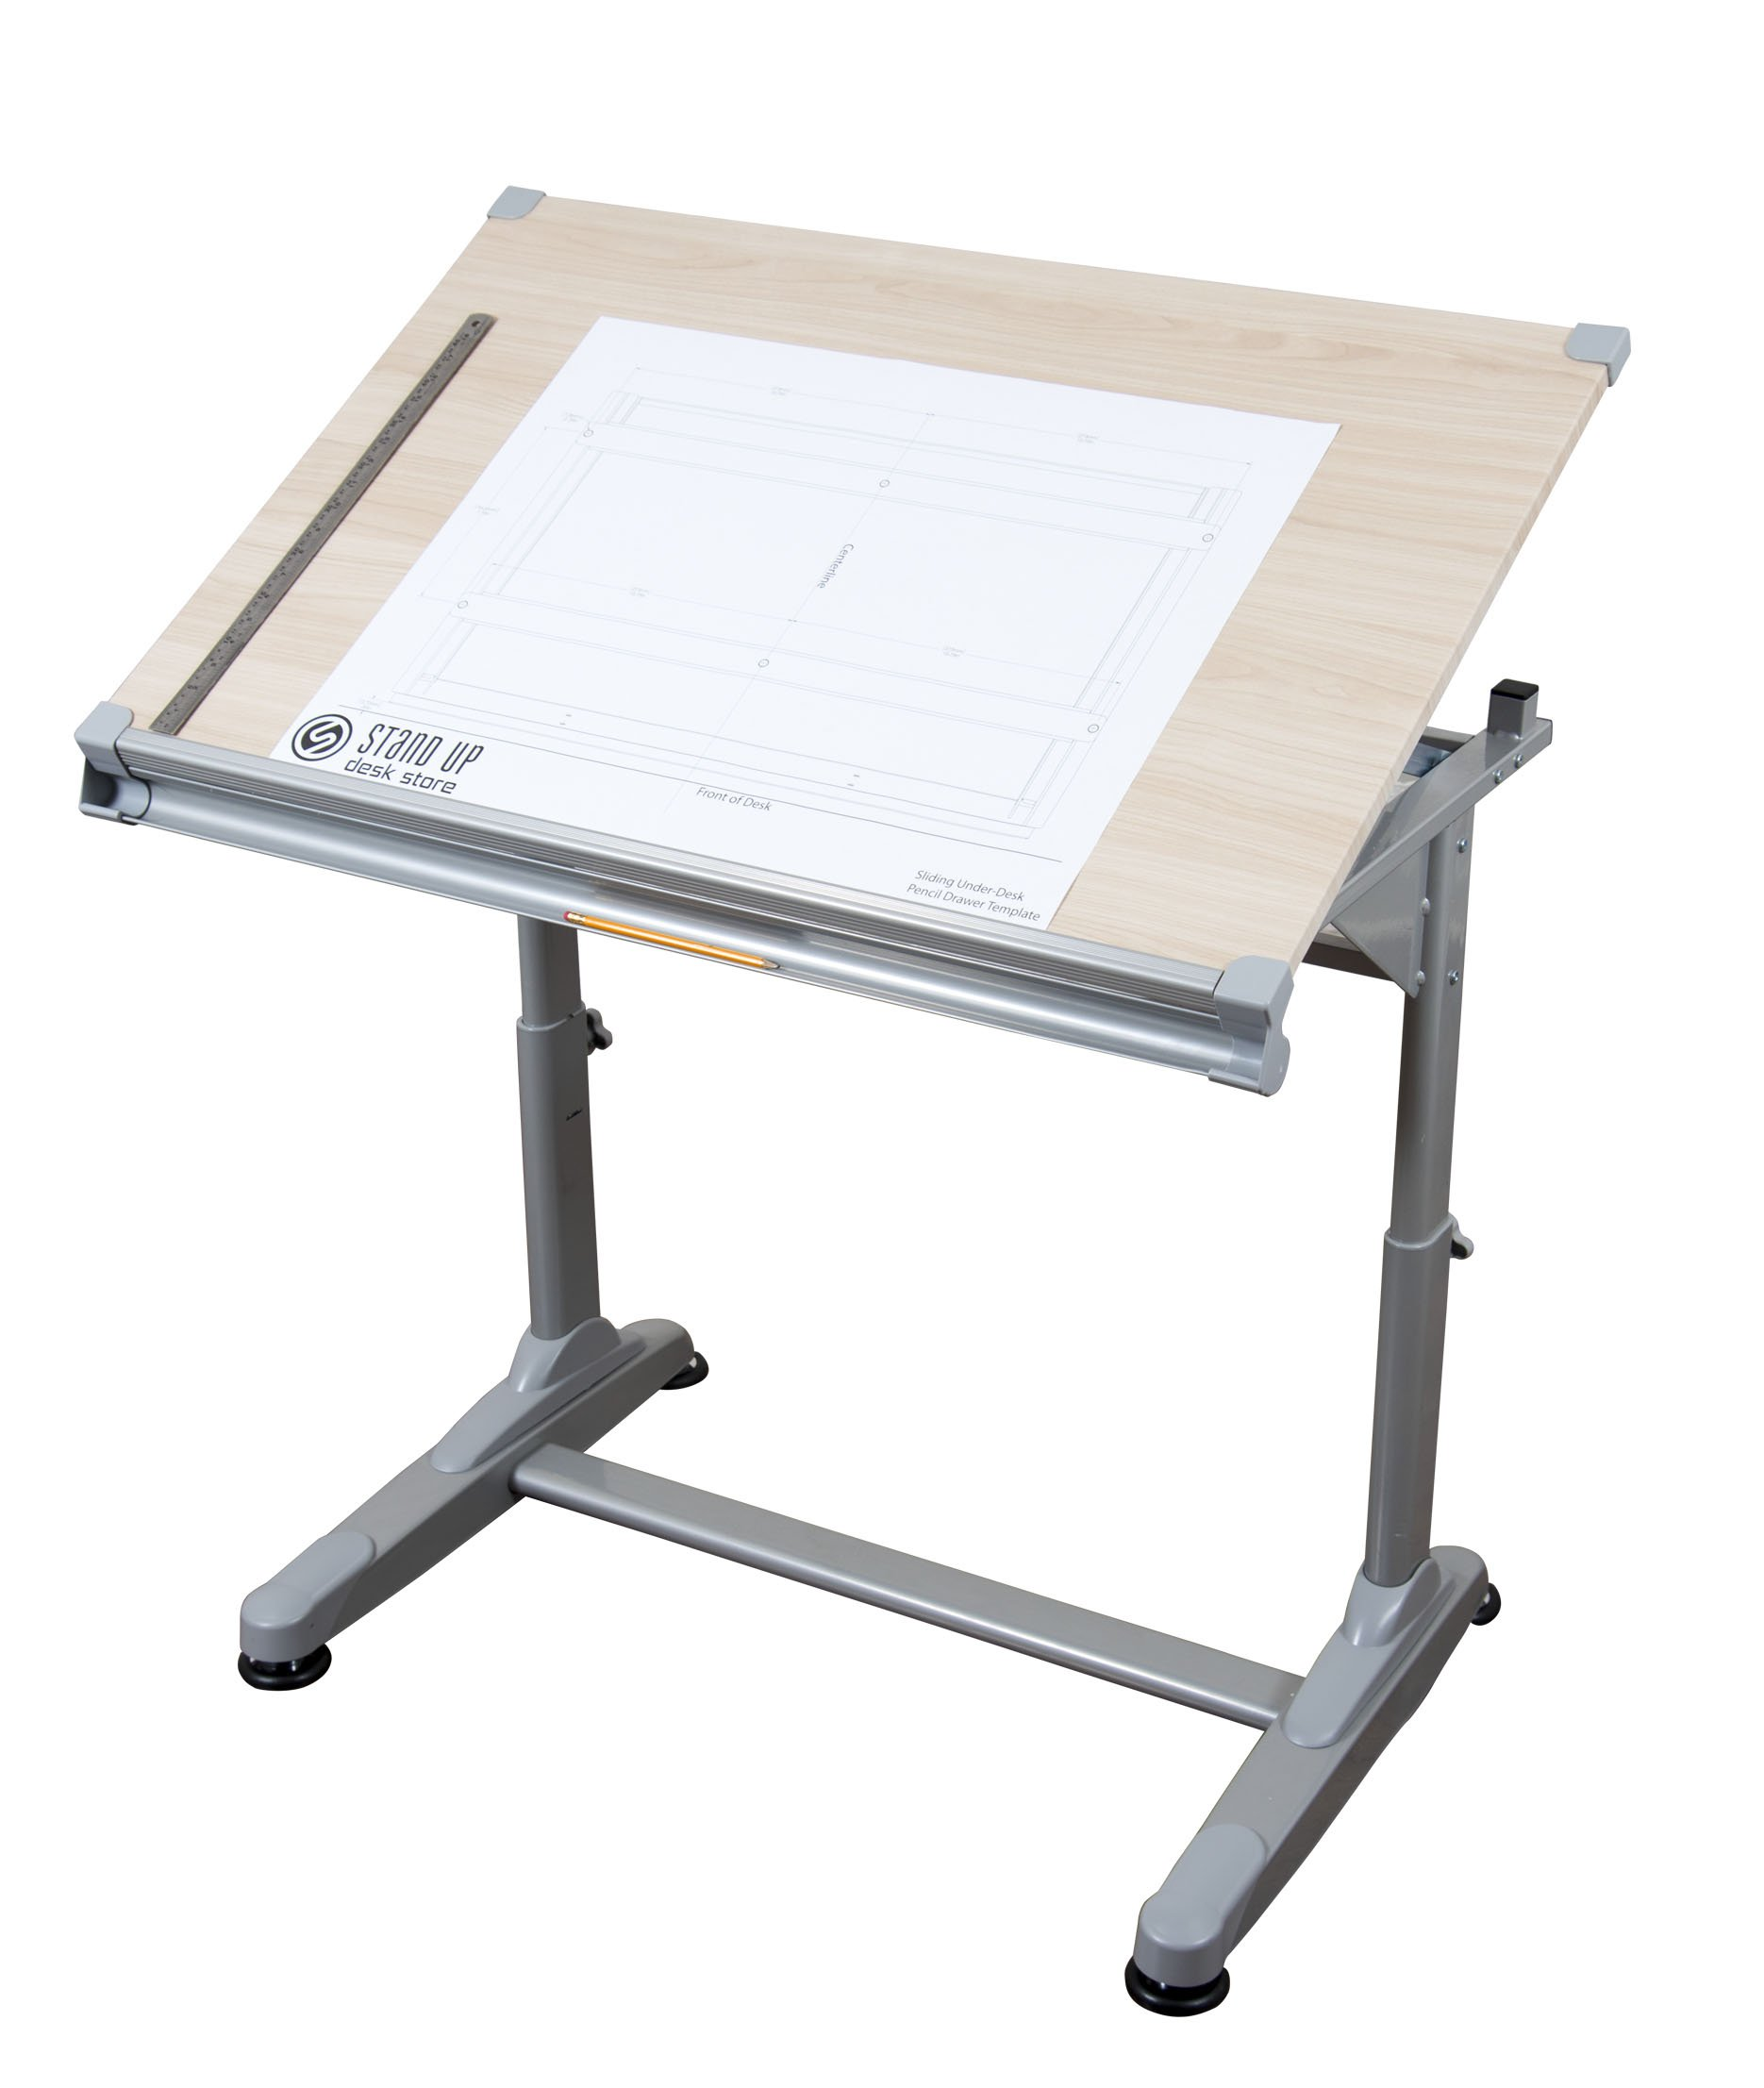 Stand Up Desk Store Height Adjustable Drawing and Drafting Table with 39.2''W x 27.5'' D Surface, Silver Frame with Birch Top by Stand Up Desk Store